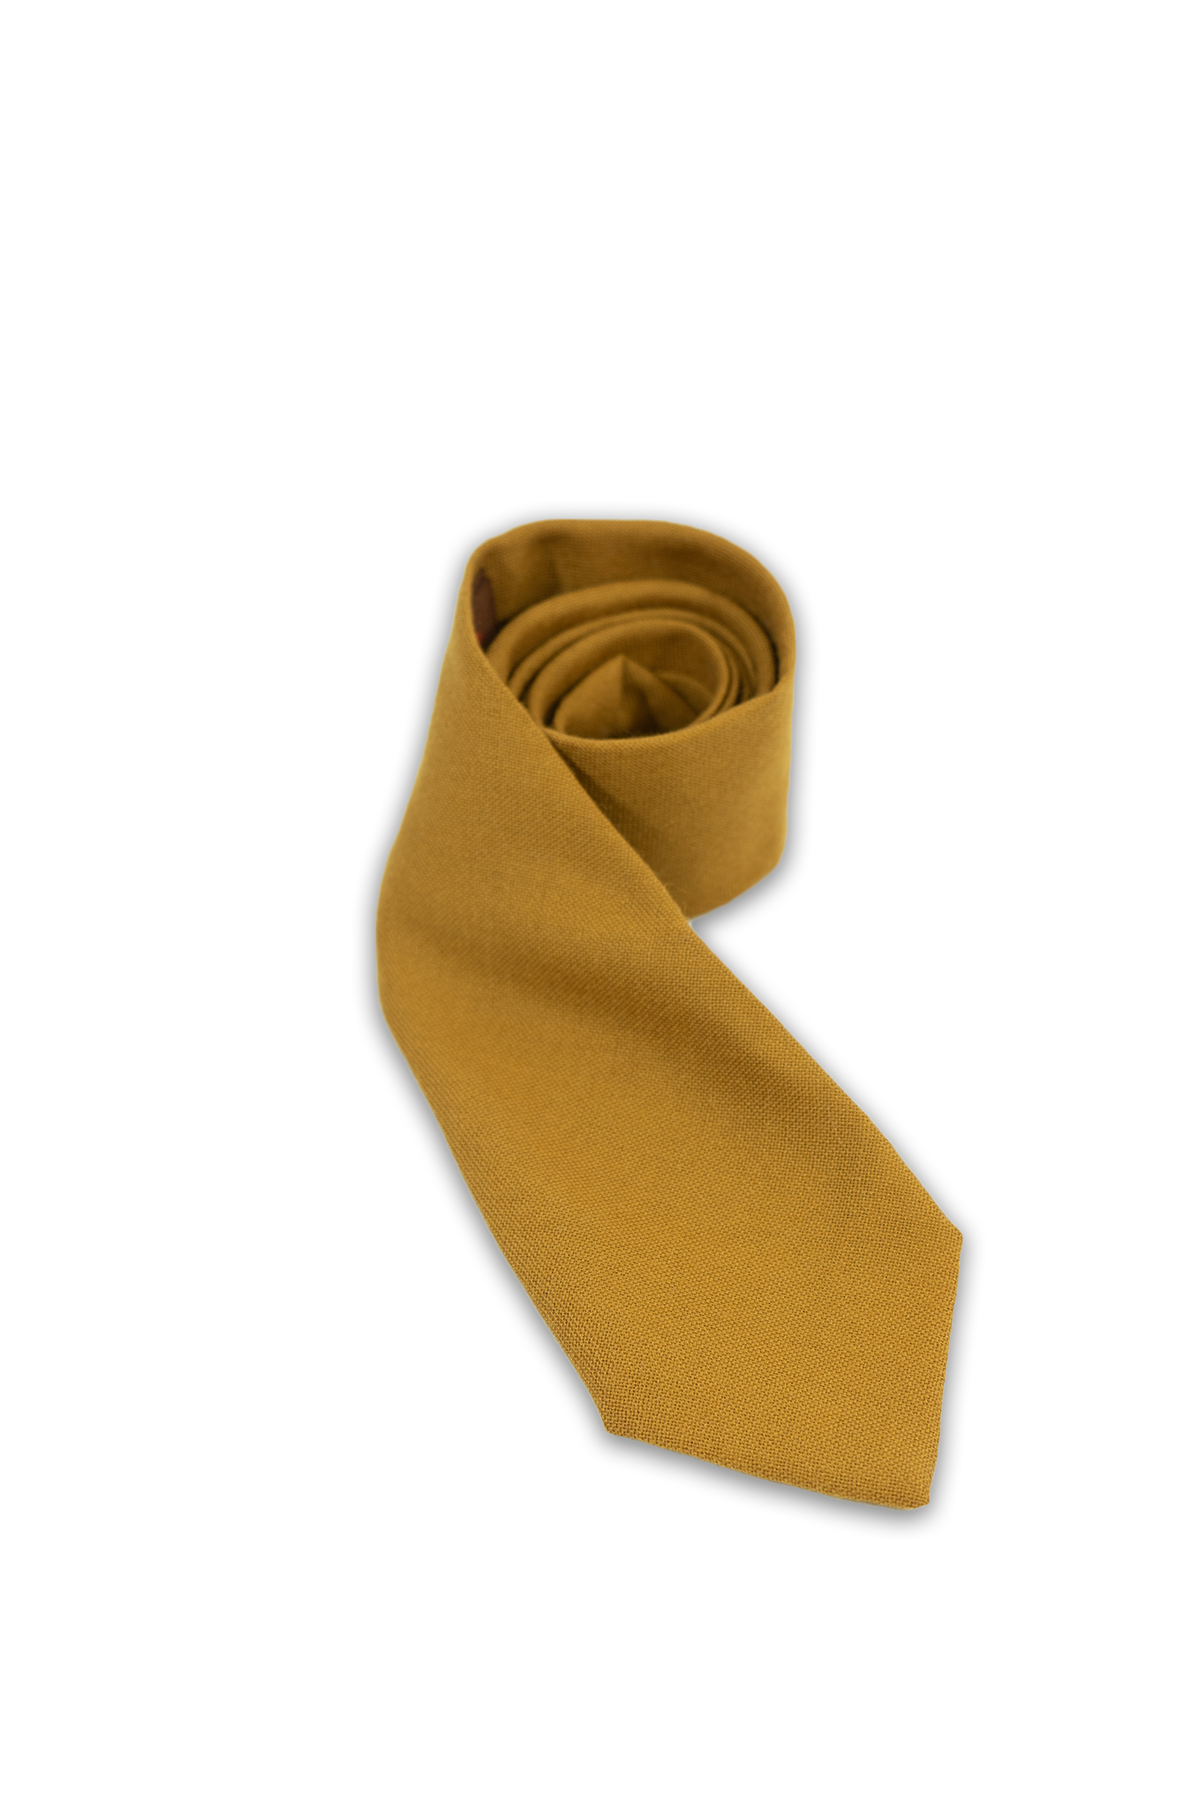 Gold Hire Tie